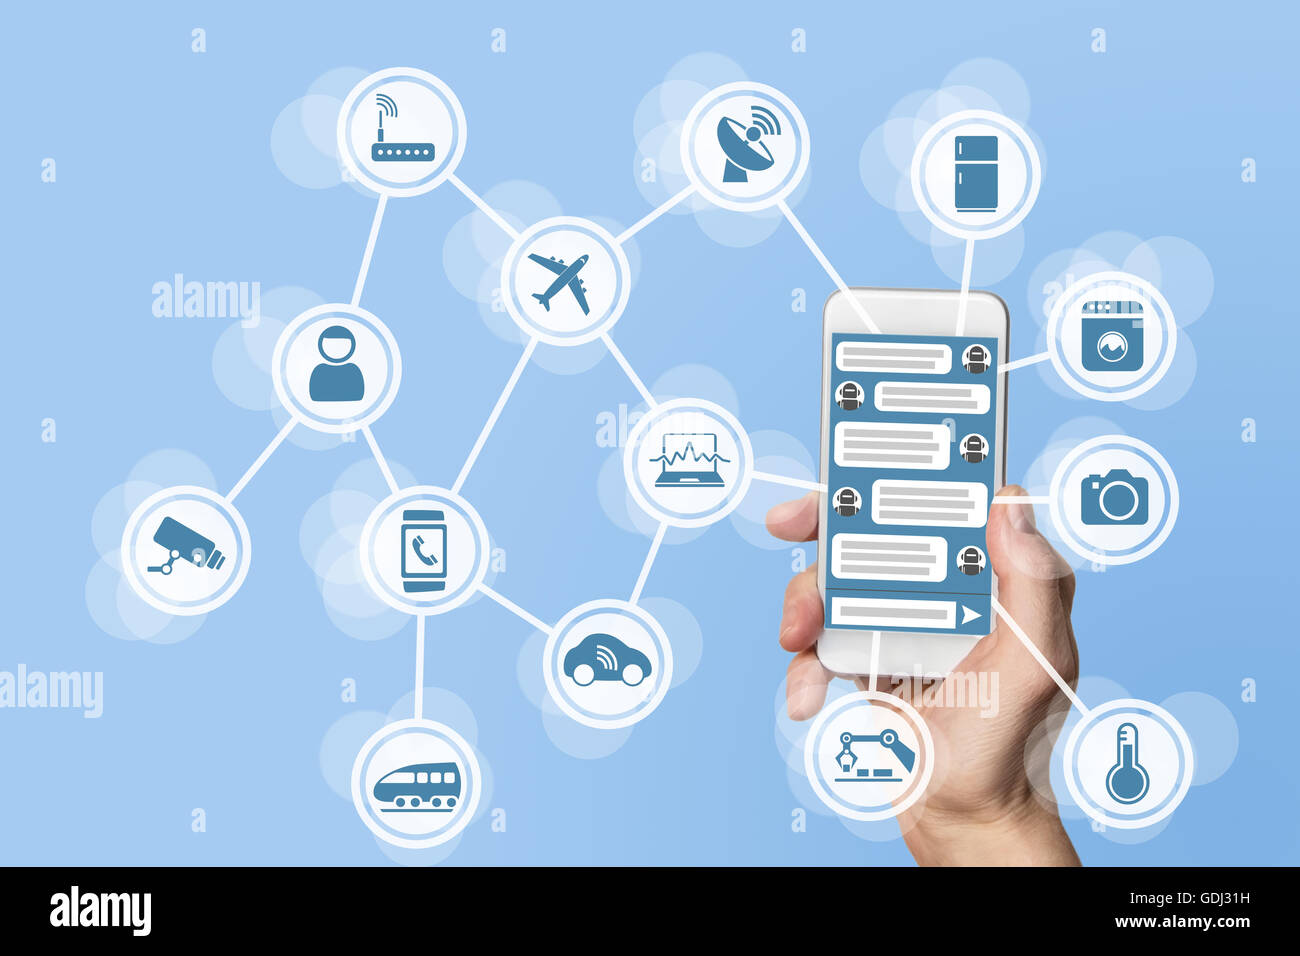 Chatbot concept for internet of things (IOT) - Stock Image